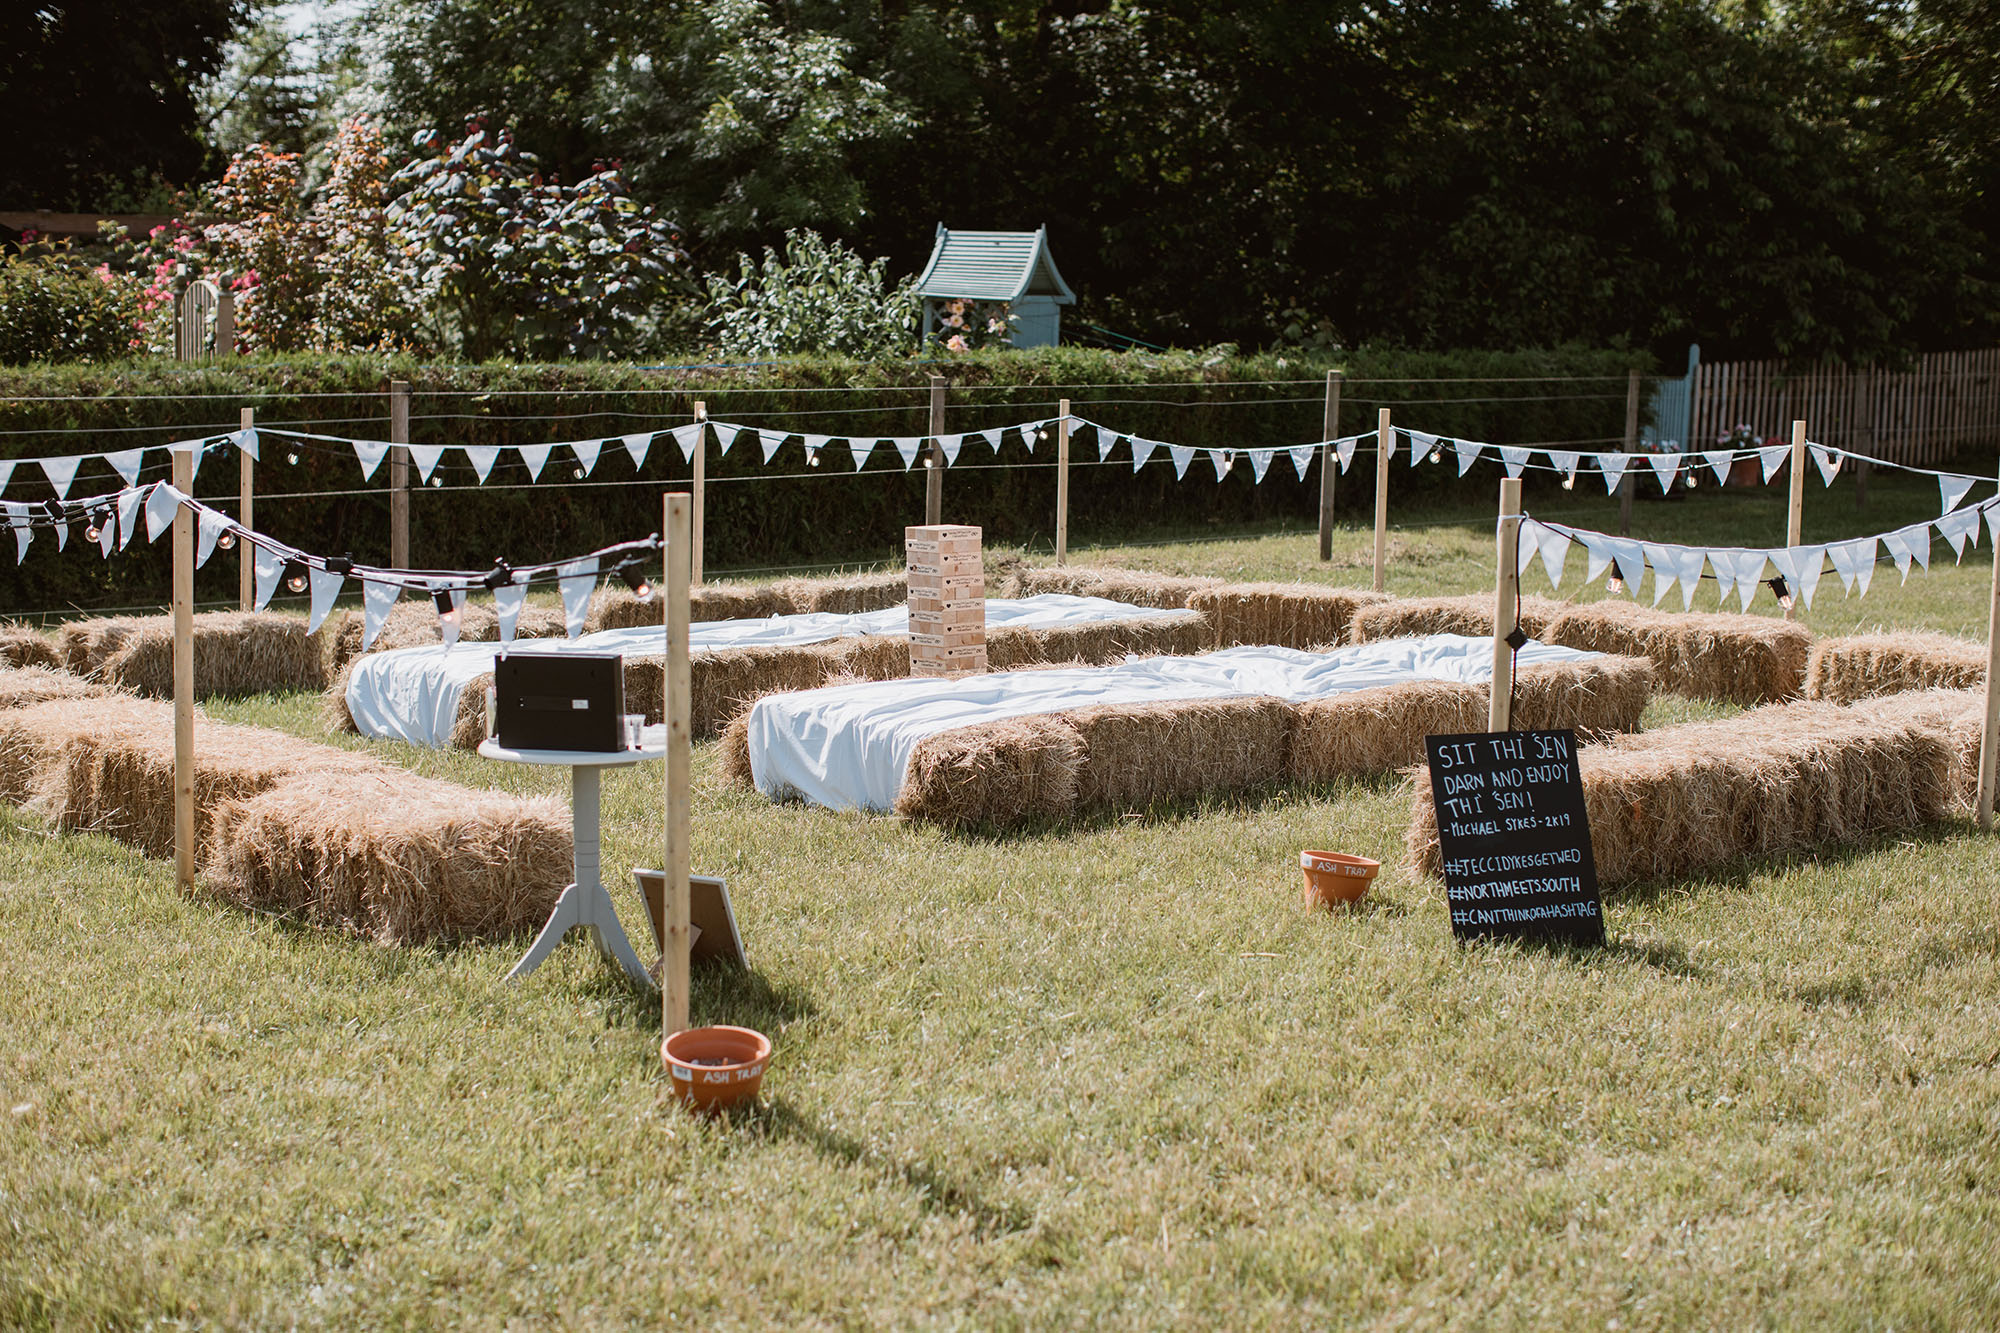 A garden set out for wedding seating with hay bales and white bunting, with a sign about sitting down in a Yorkshire dialect! Wedding image by Luke Hayden Photography